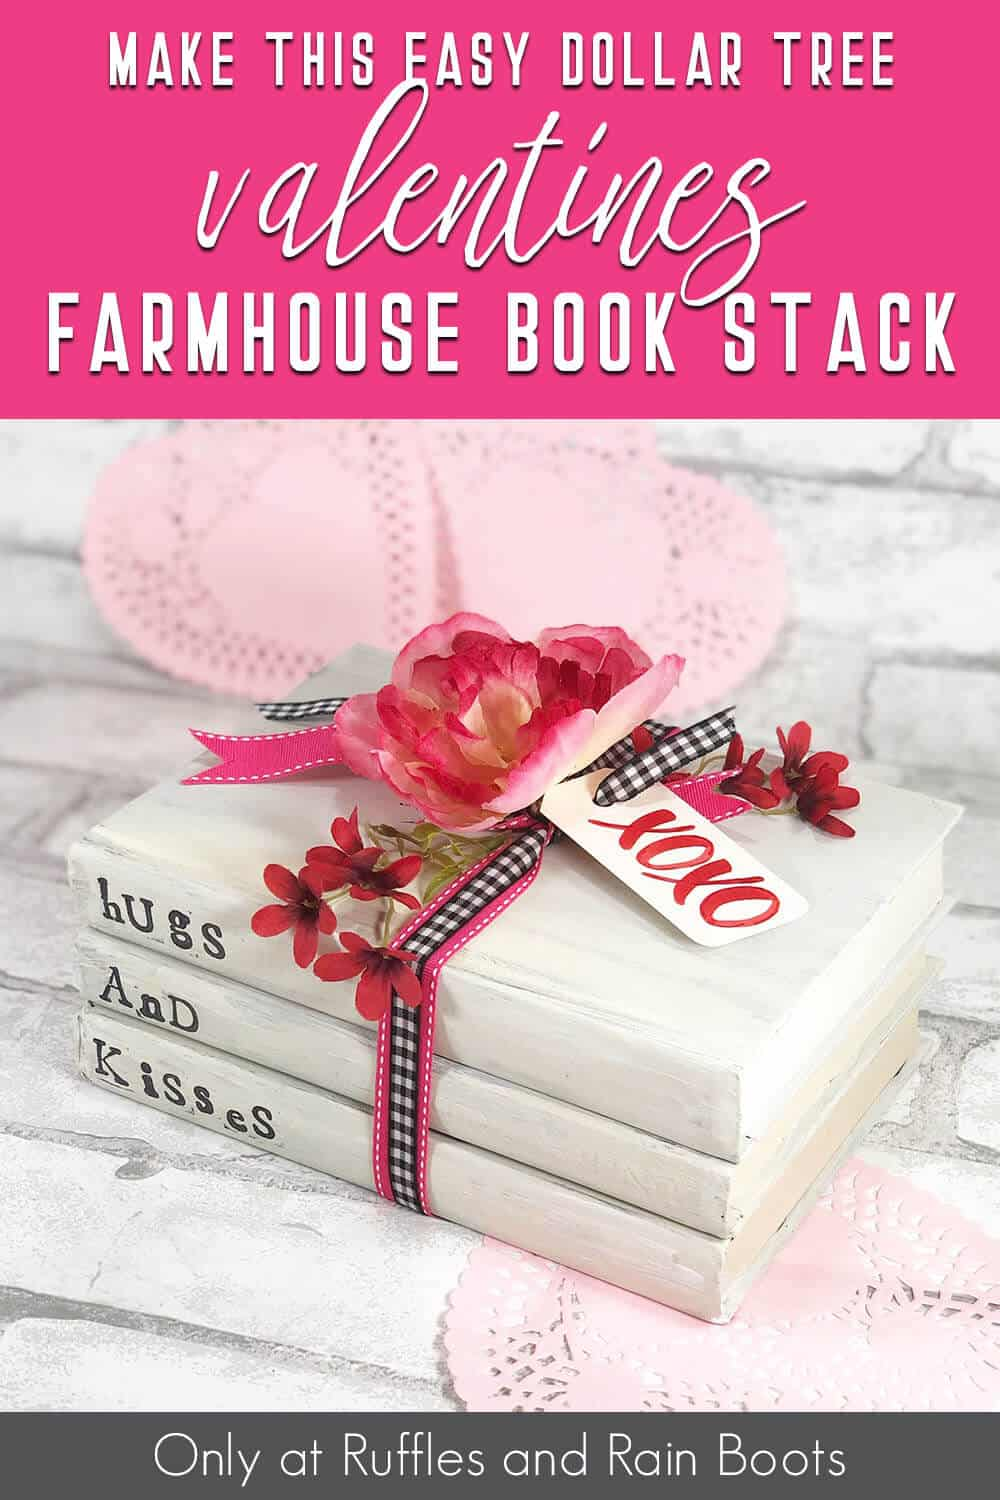 dollar tree valentines craft easy DIY book stack with text which reads make this easy dollar tree valentines farmhouse book stack